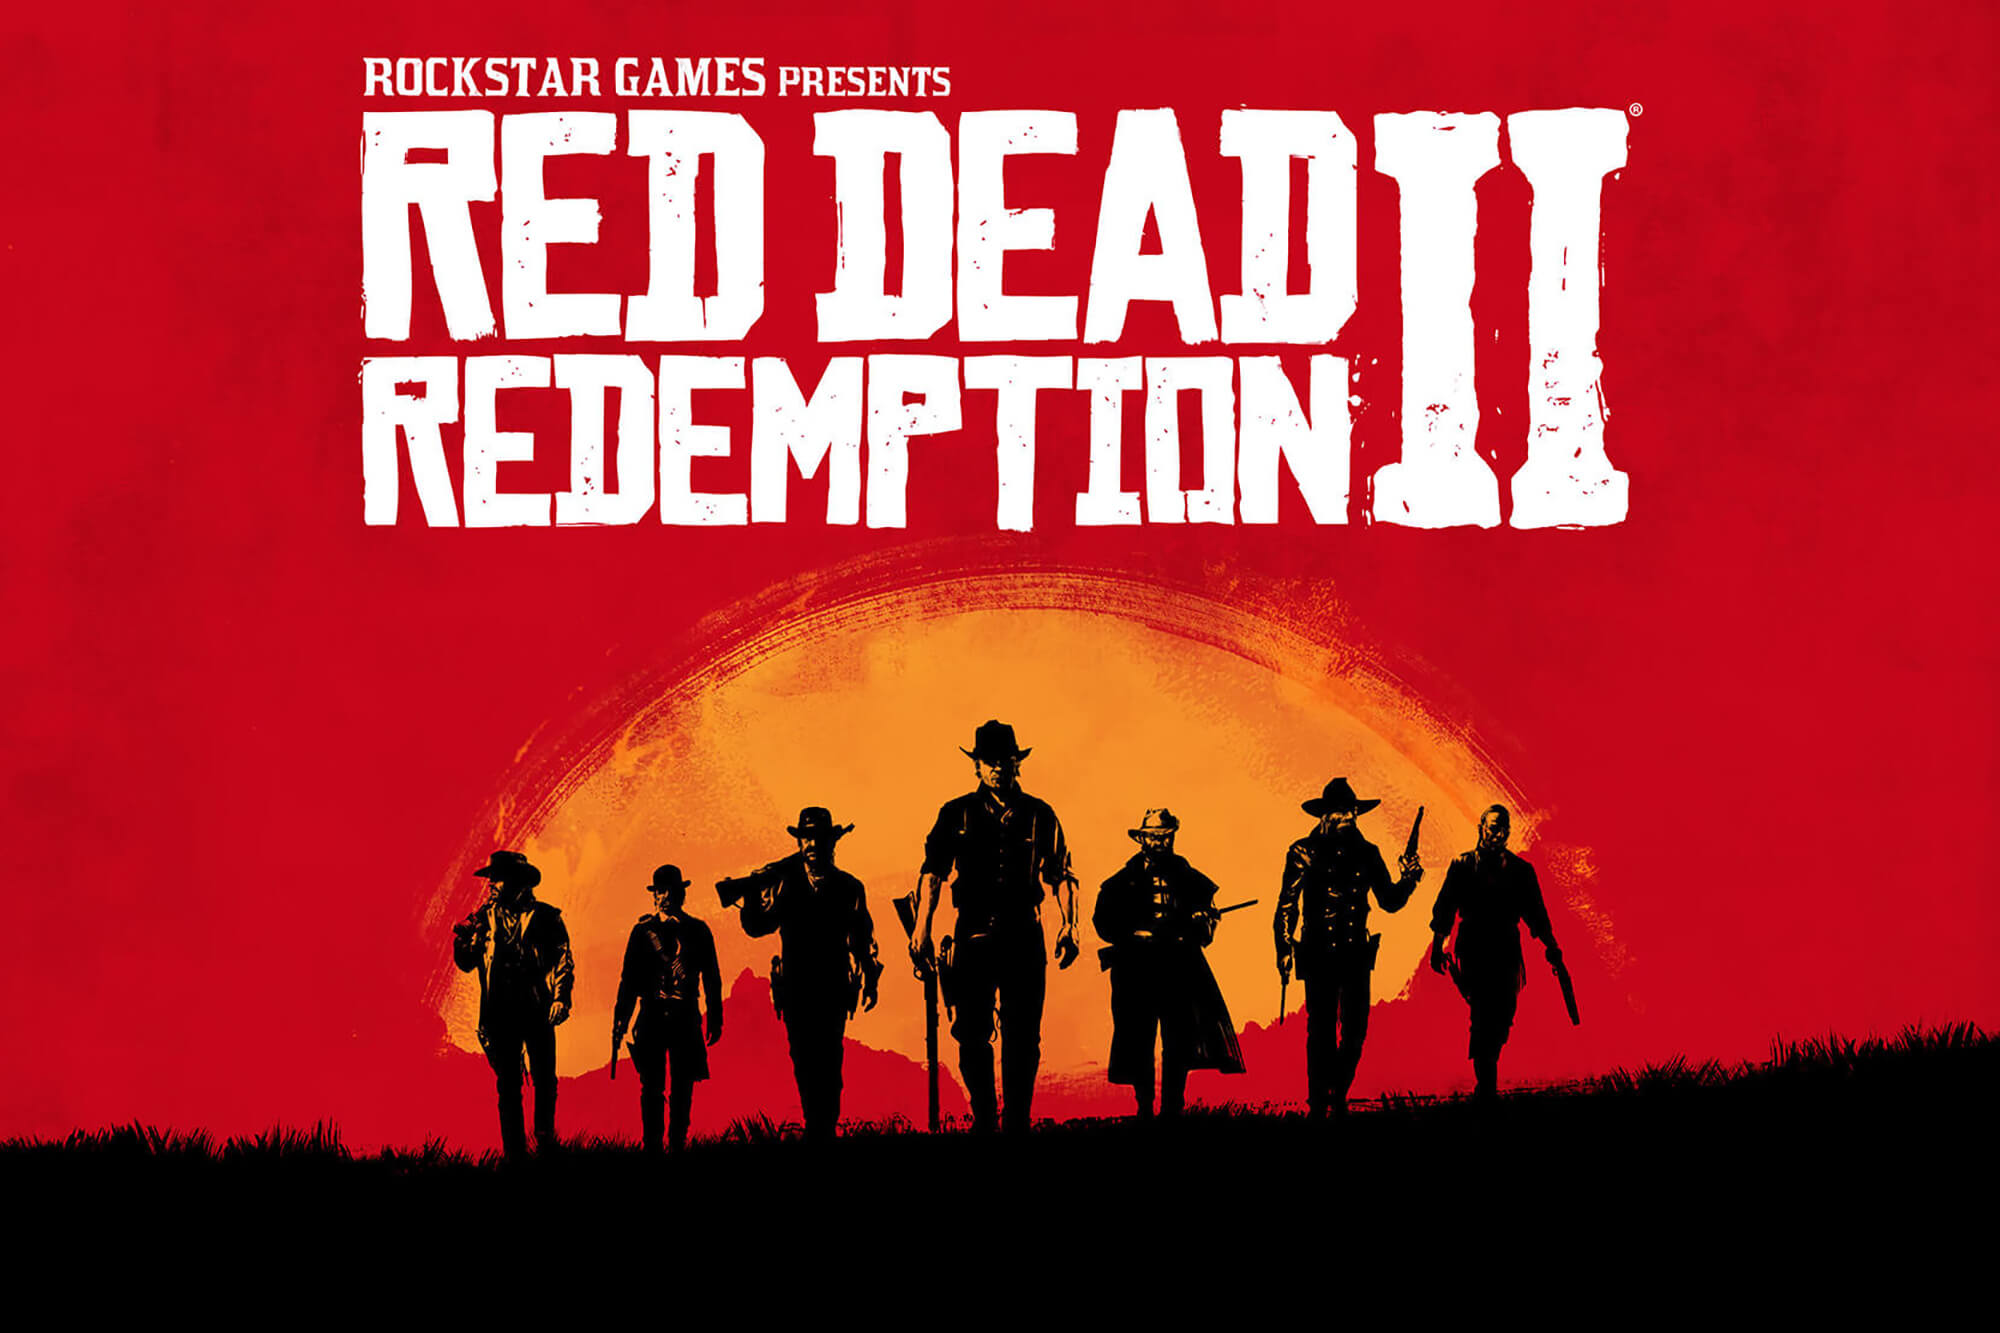 Red Dead Redemption 2. Seven cowboys walk forwards against a red and orange sunset background.